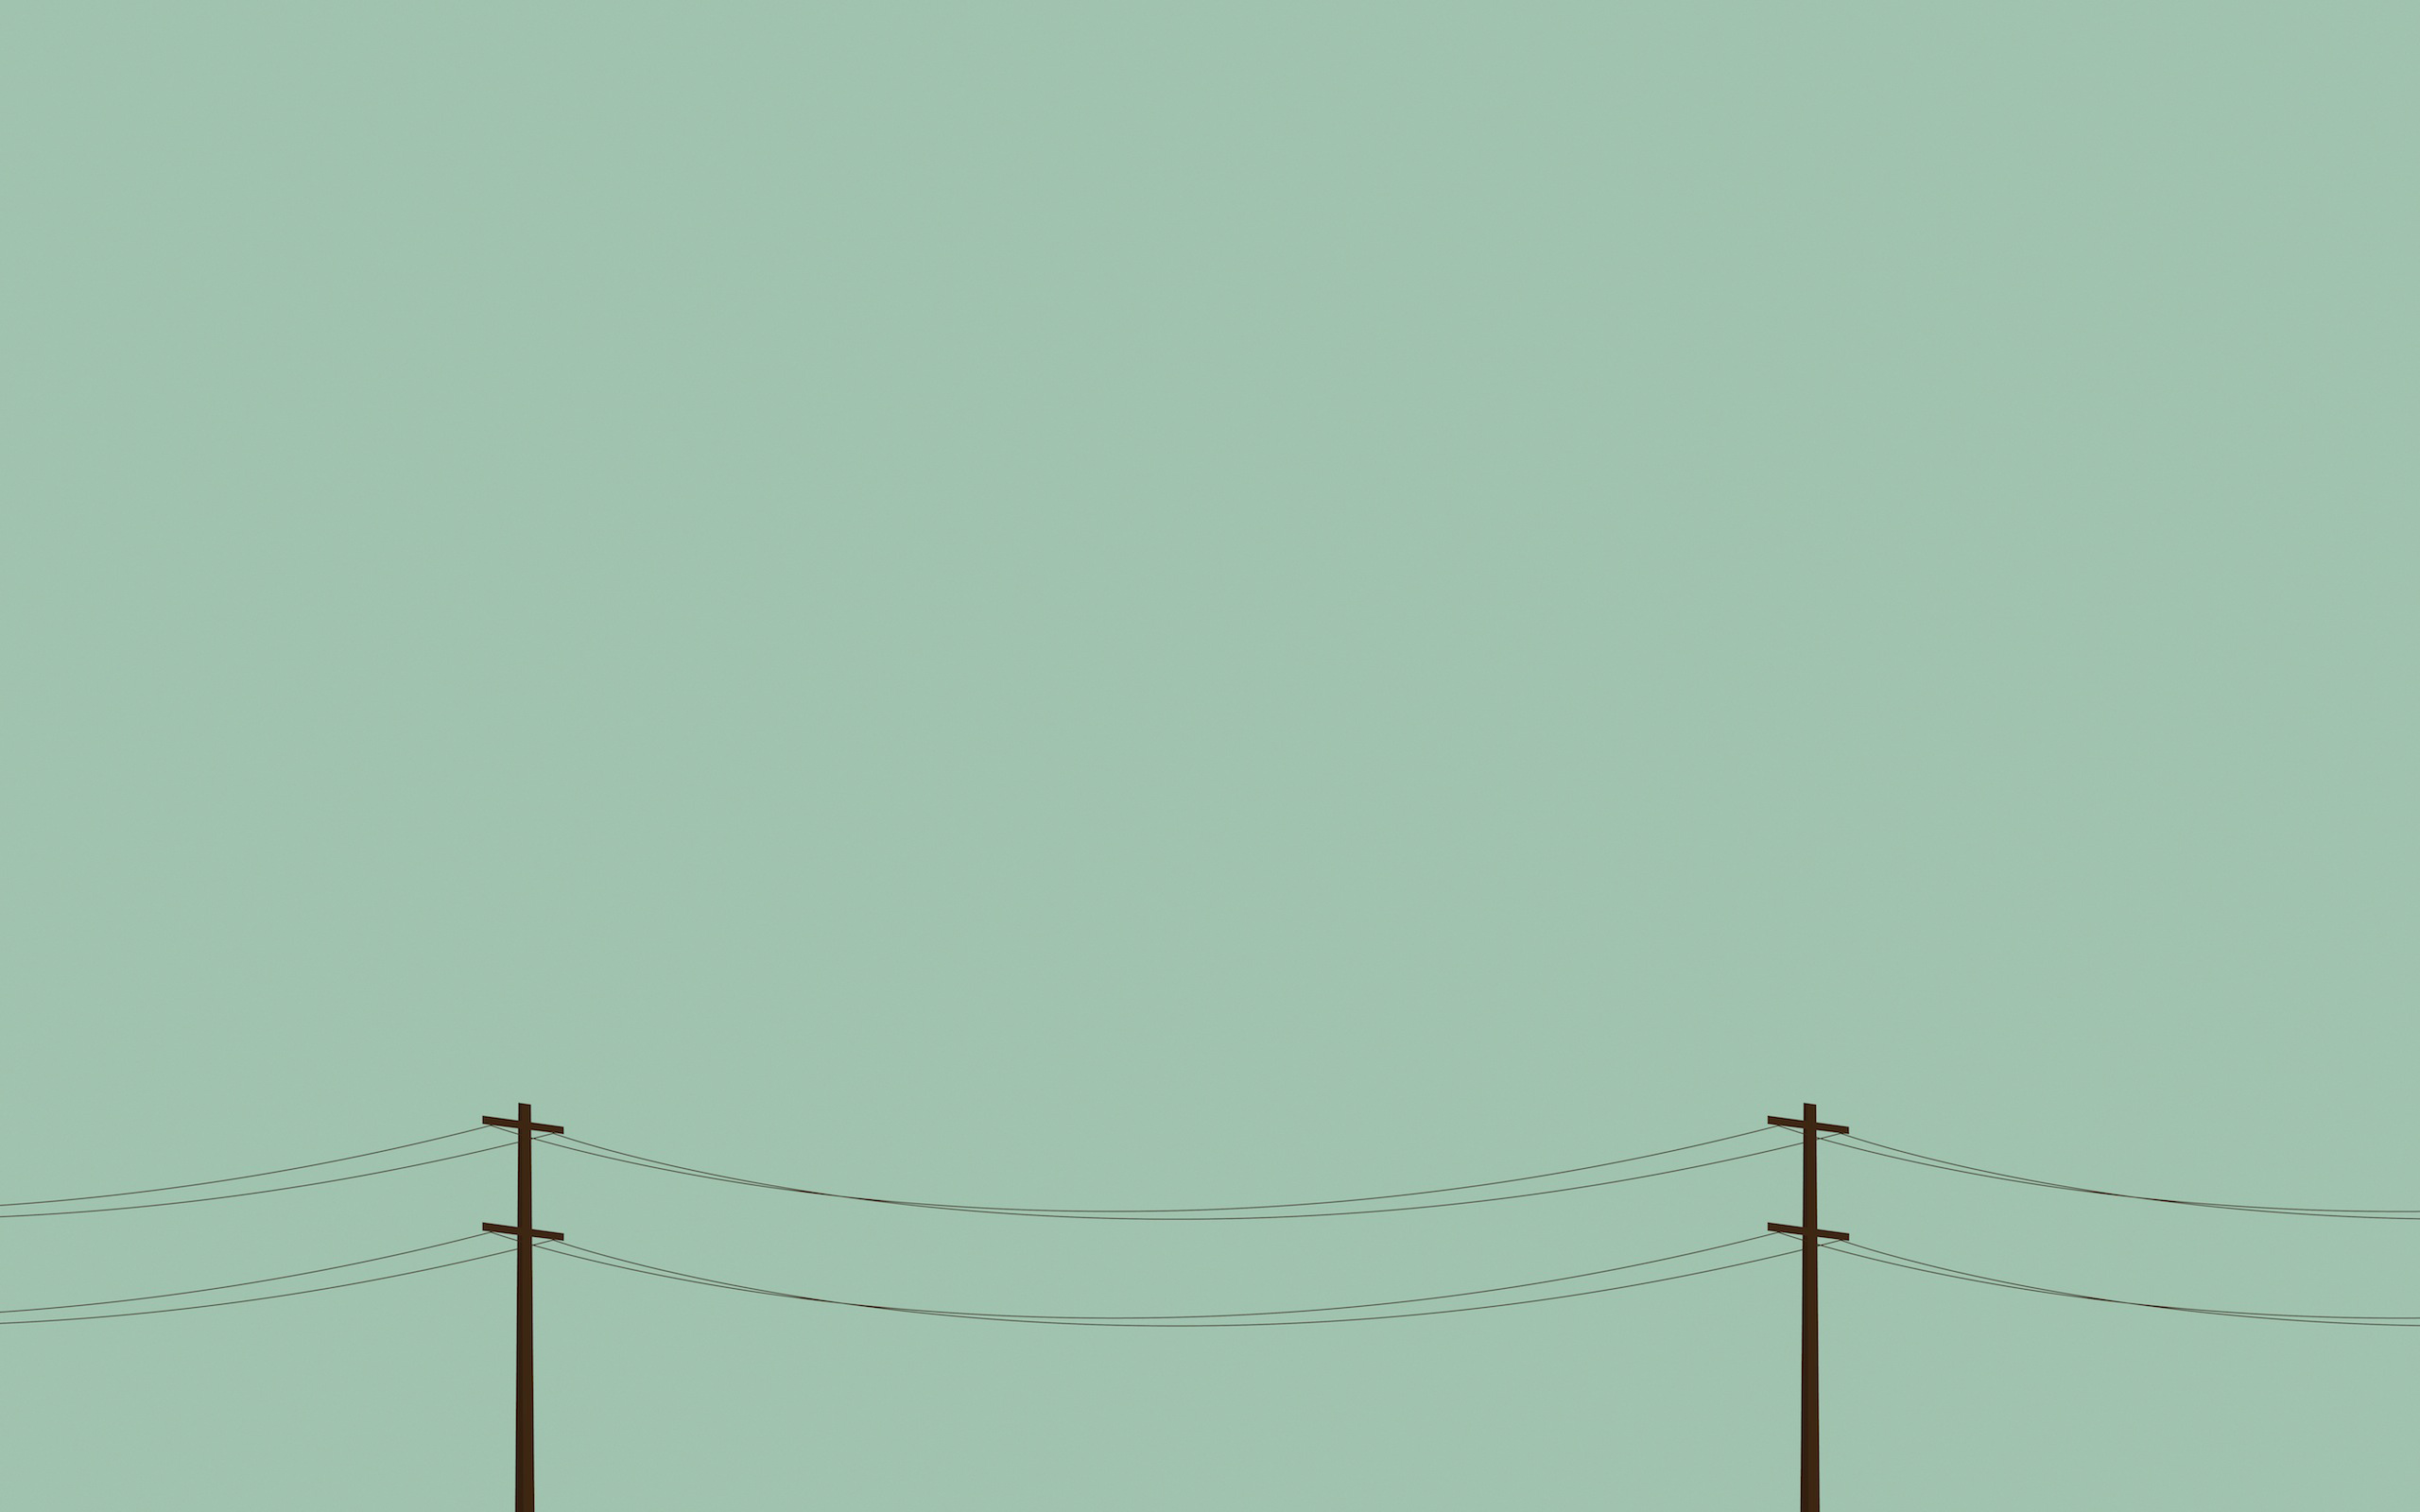 150 Simple Desktop Wallpapers for Minimalist Lovers   icanbecreative 2560x1600